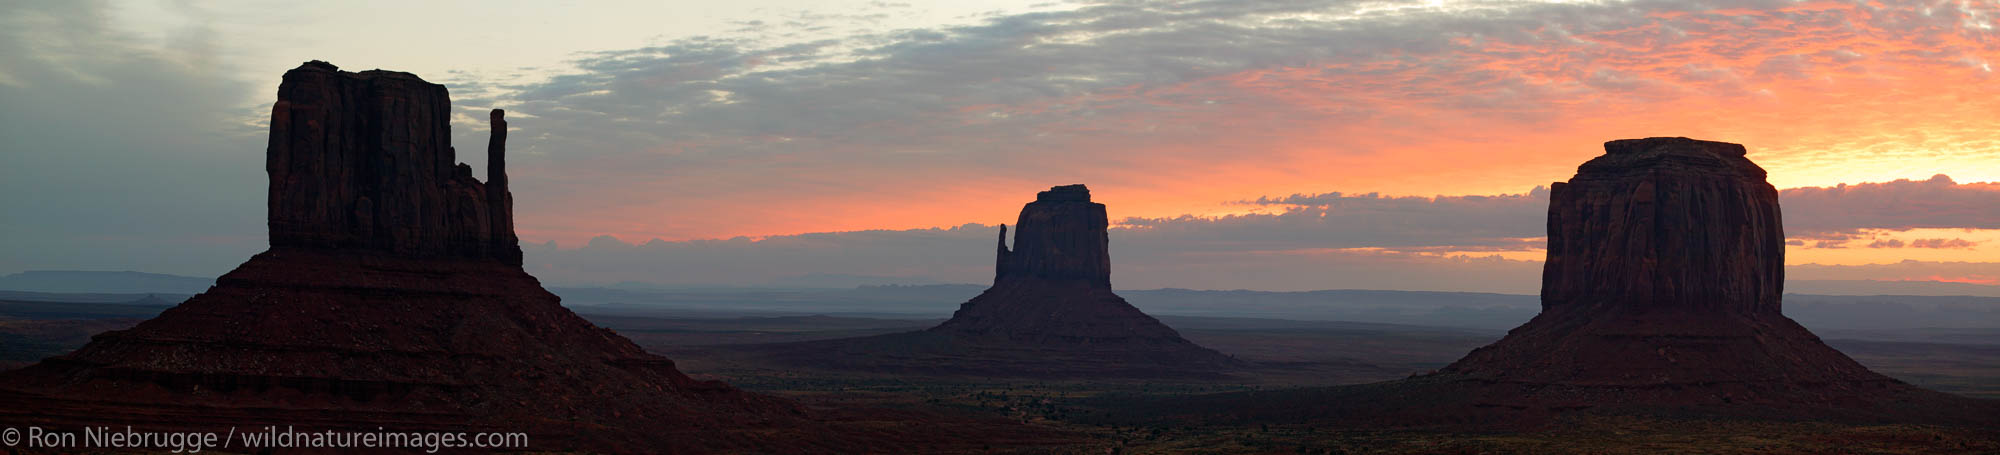 Panoramic of Monument Valley Navajo Tribal Park at sunrise, Utah.  This image consits of 5 11mp images.